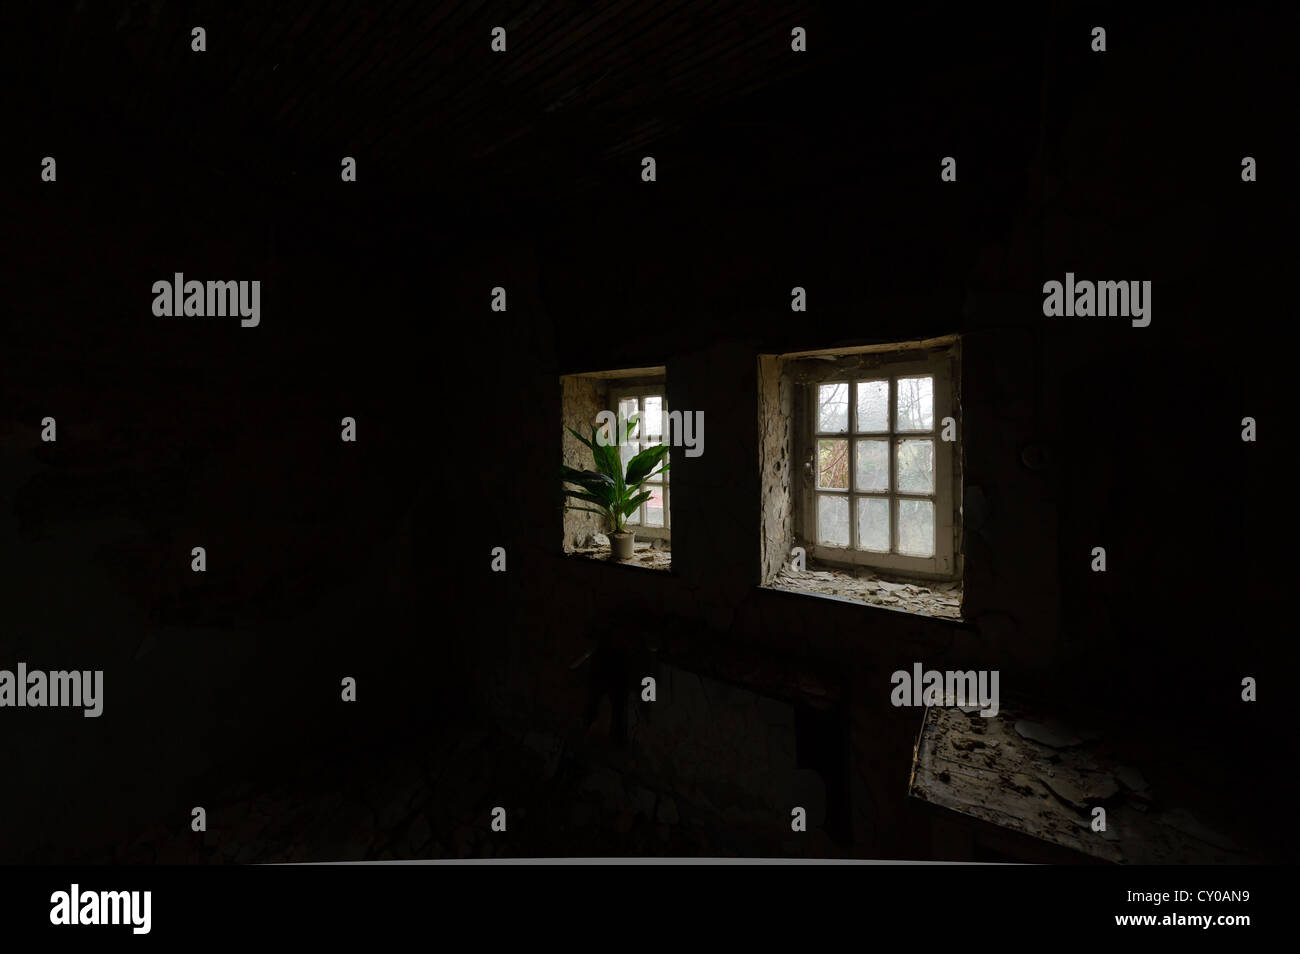 Dark empty room with window - Stock Photo Empty Dark Room With A Plant And Small Windows